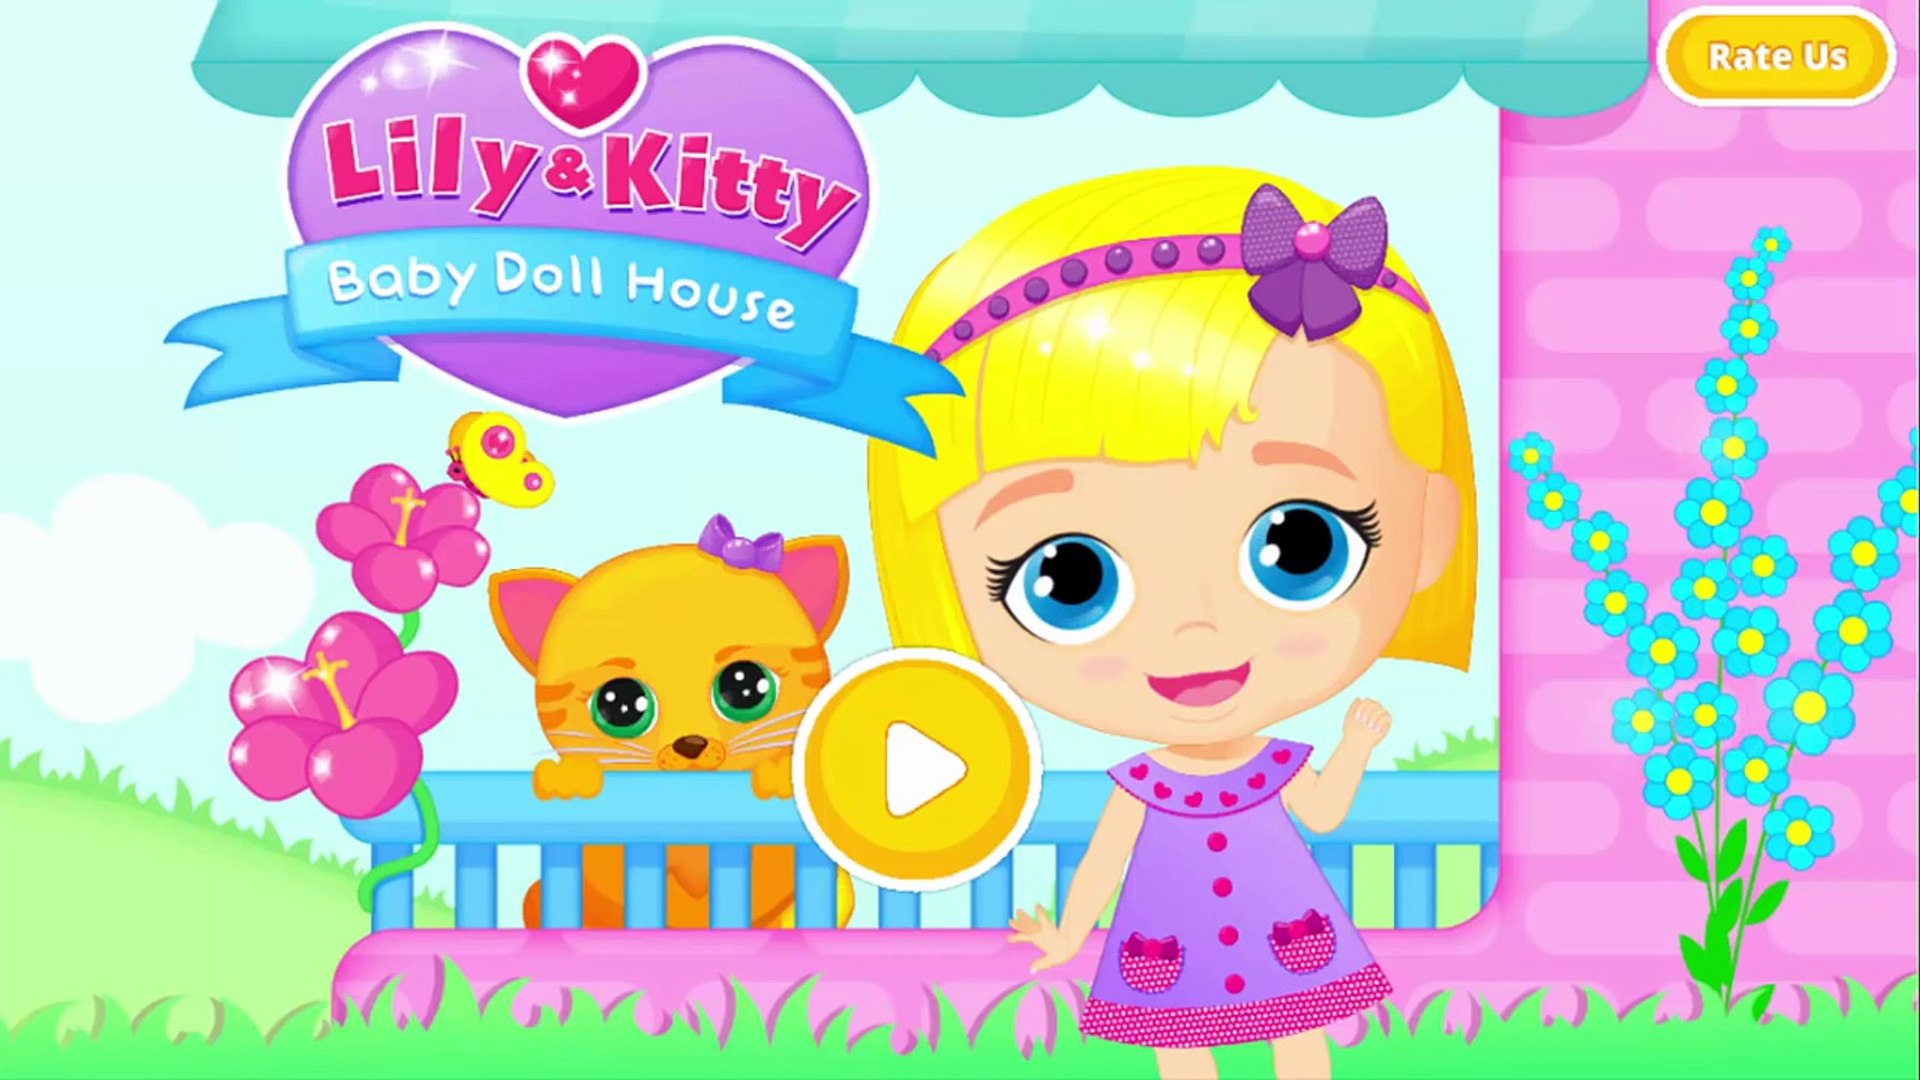 Games For Kids And Toddlers | Baby Doll House To Play The Cutest Baby And Pet Care